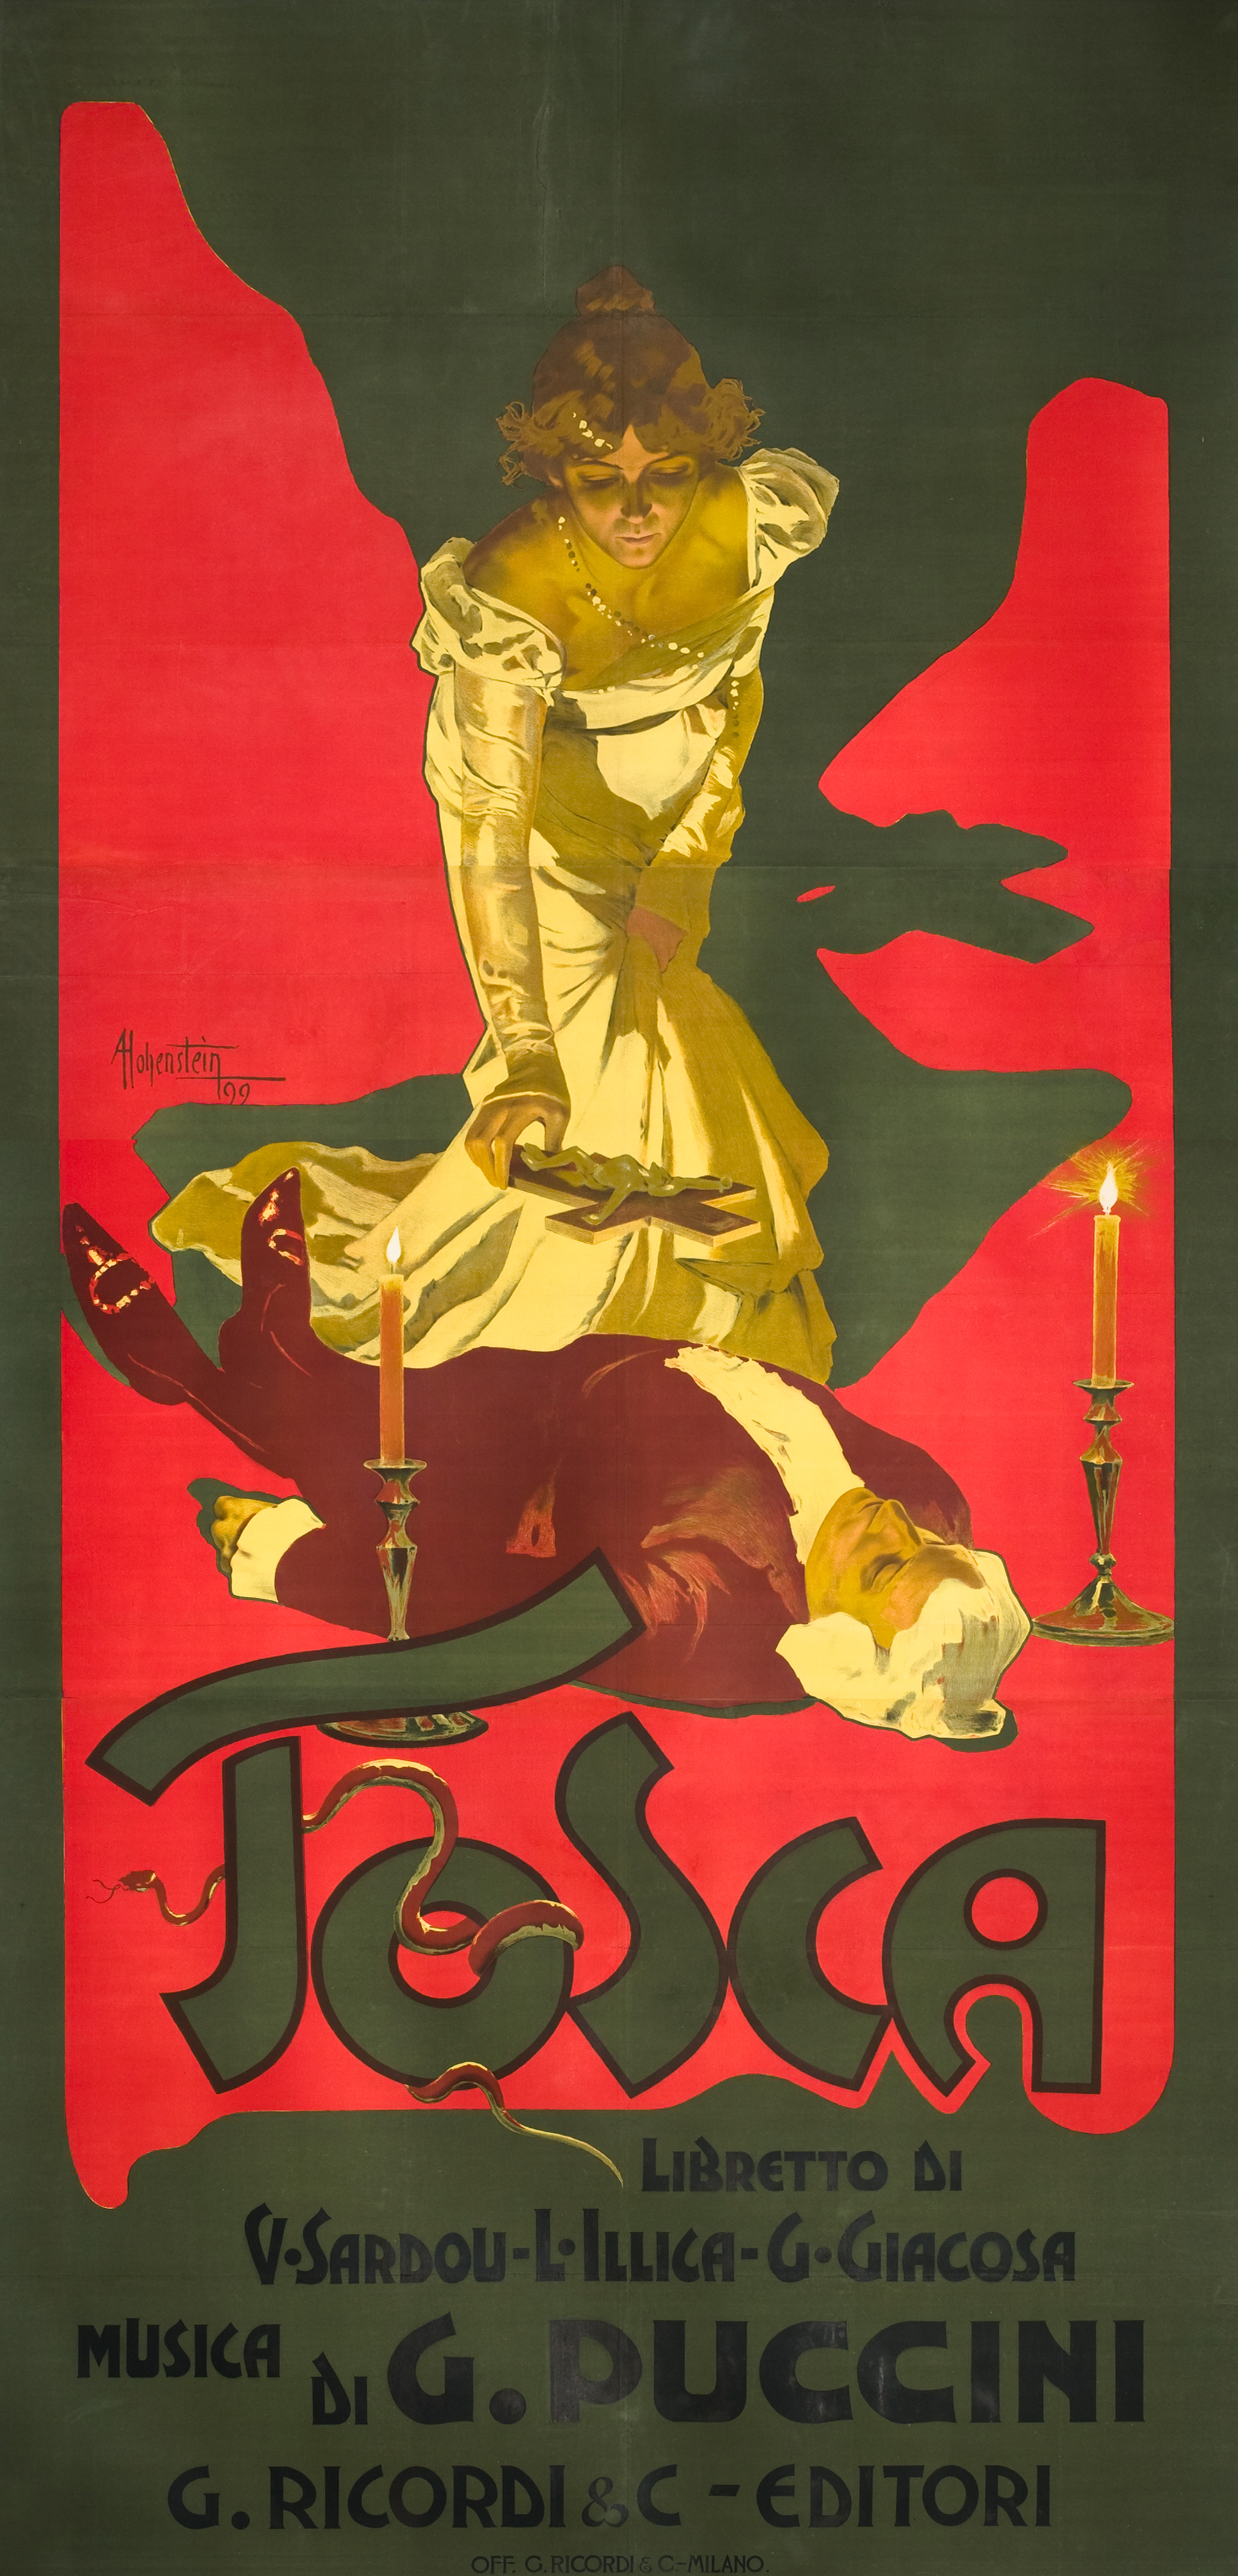 Hohenstein's  towering 1896 poster for Puccini's Tosca (10 feet tall) perfectly echoed the melodrama, passion and spectacle of the Italian opera.